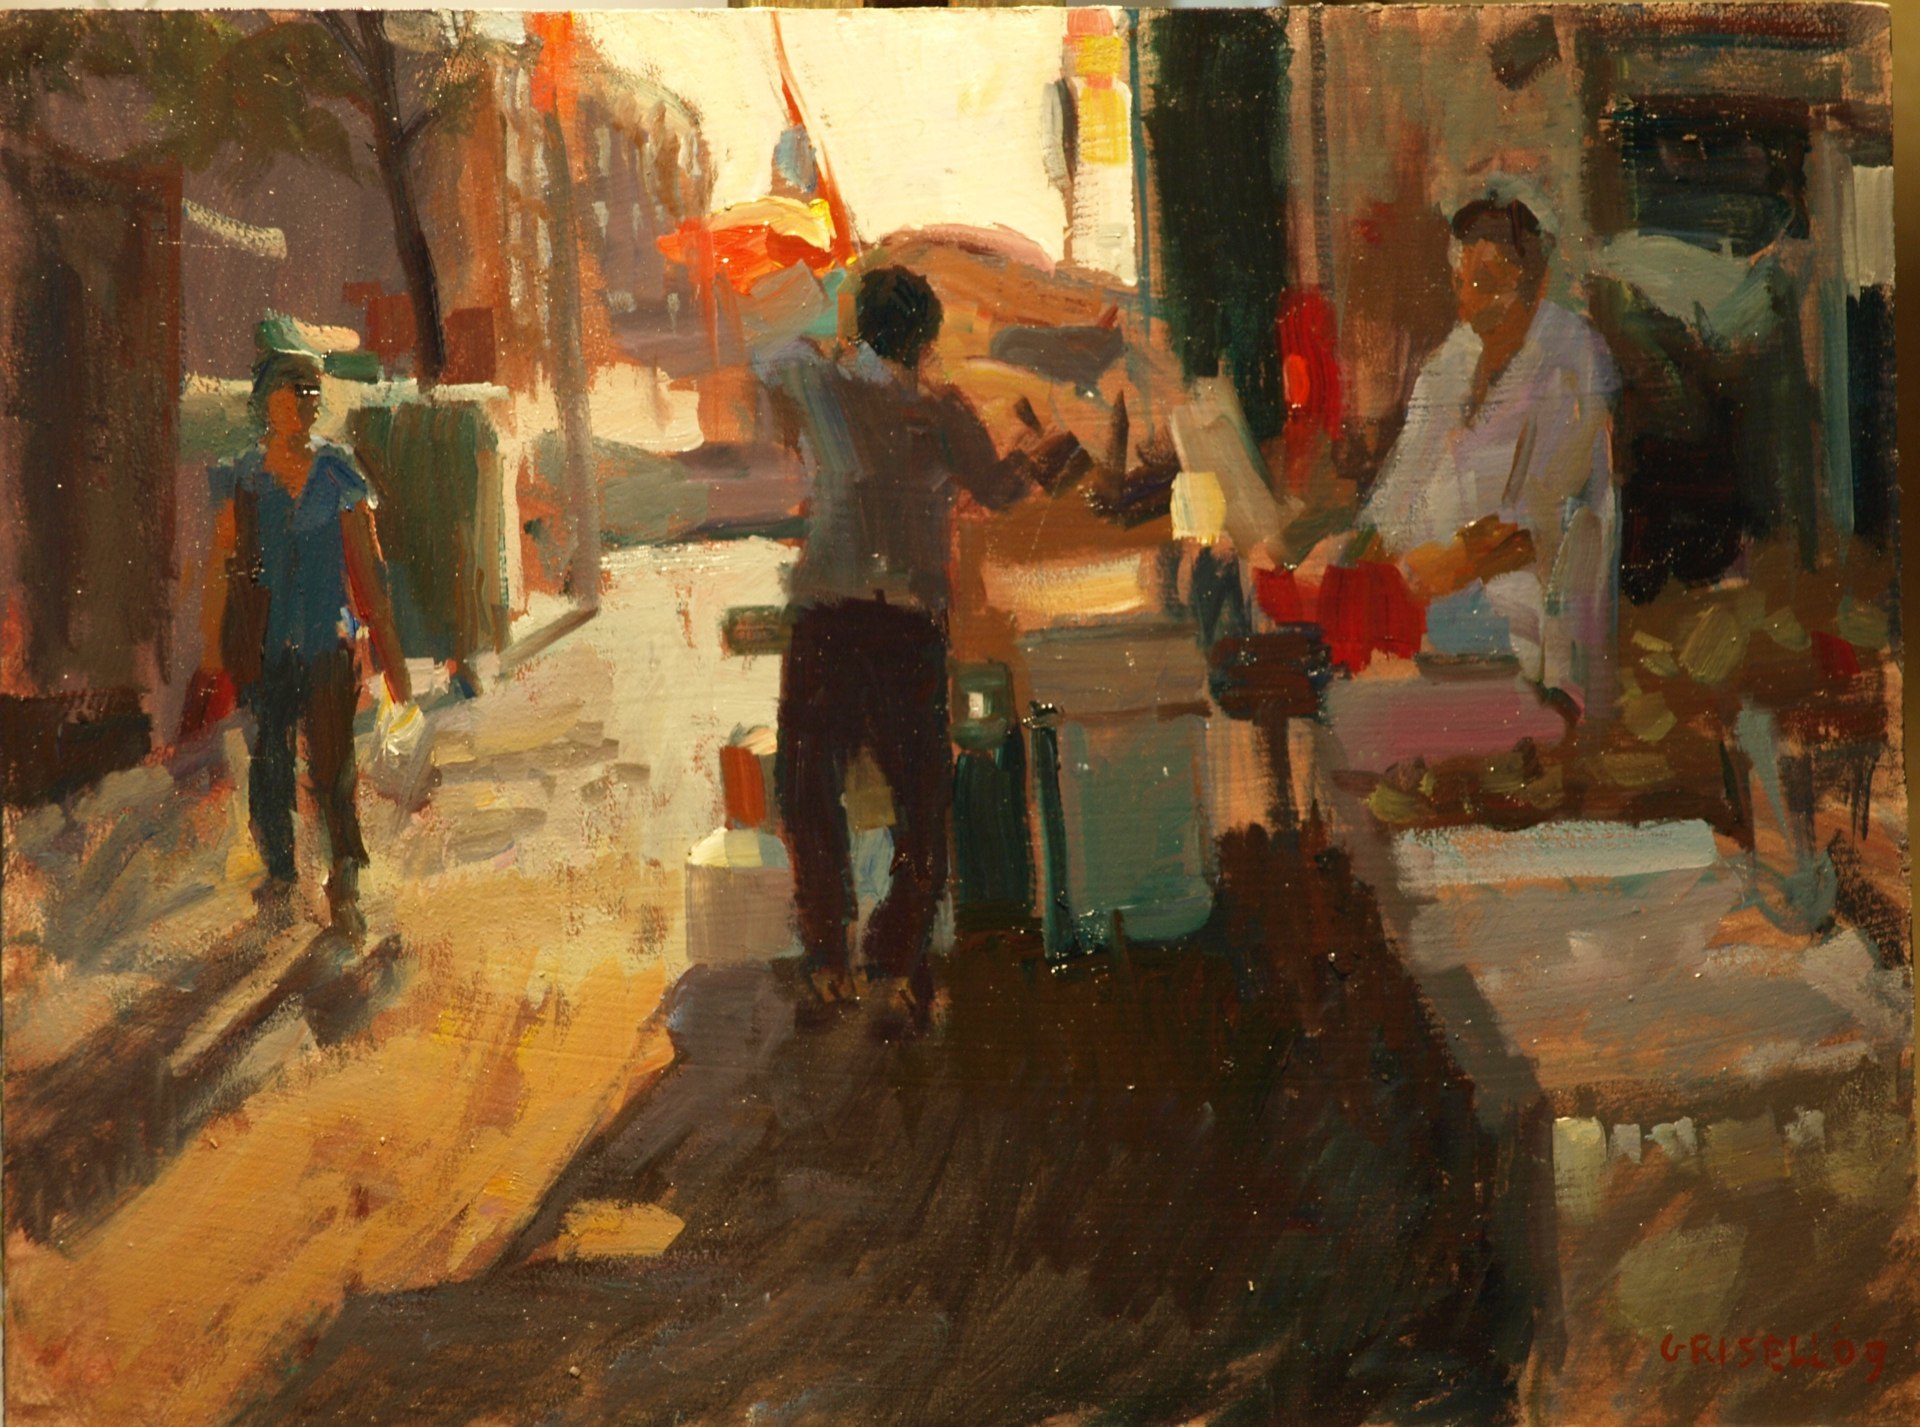 Sidestreet - Chinatown, Oil on Panel, 12 x 18 Inches, by Susan Grisell, $325